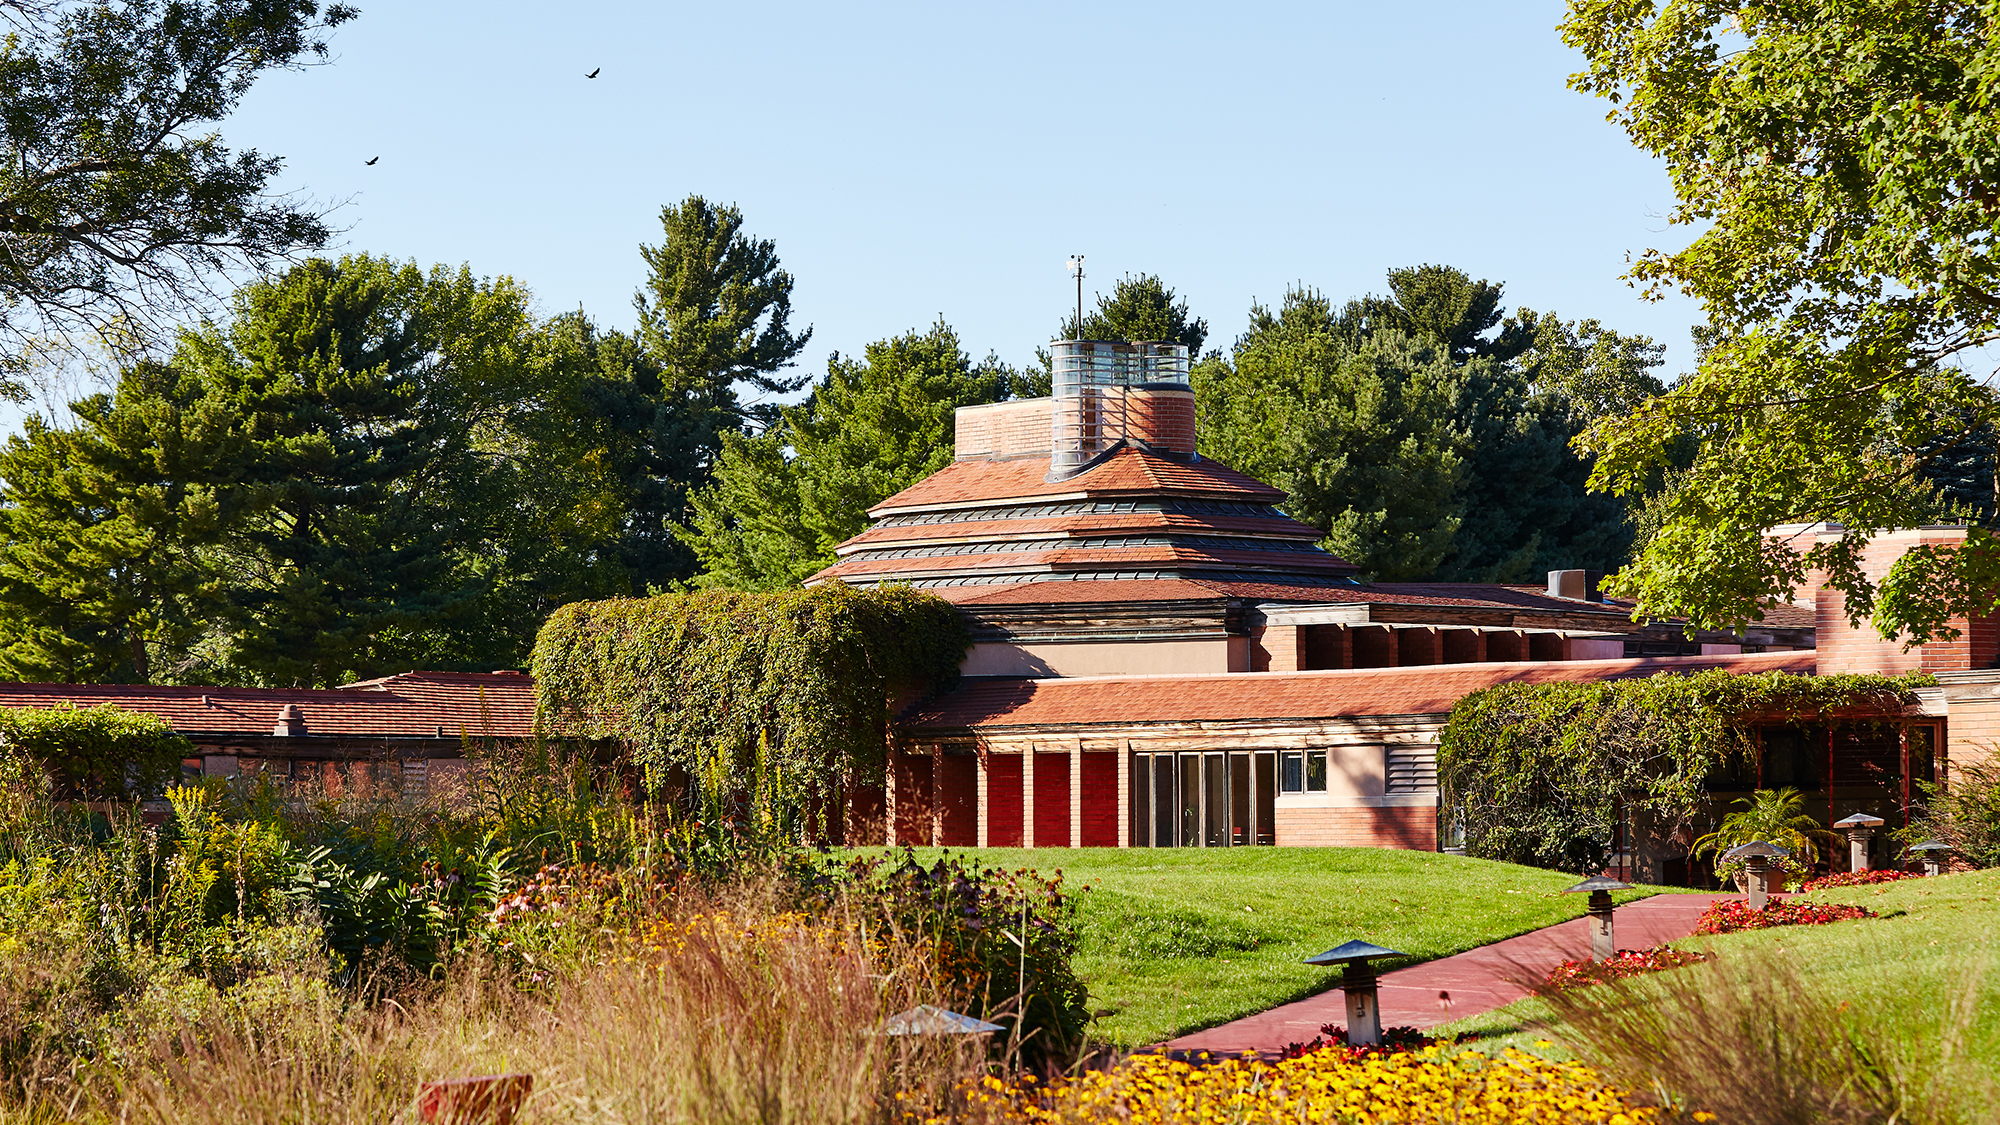 H.F. Johnson Jr et Wingspread, la maison conçue par Frank Lloyd Wright